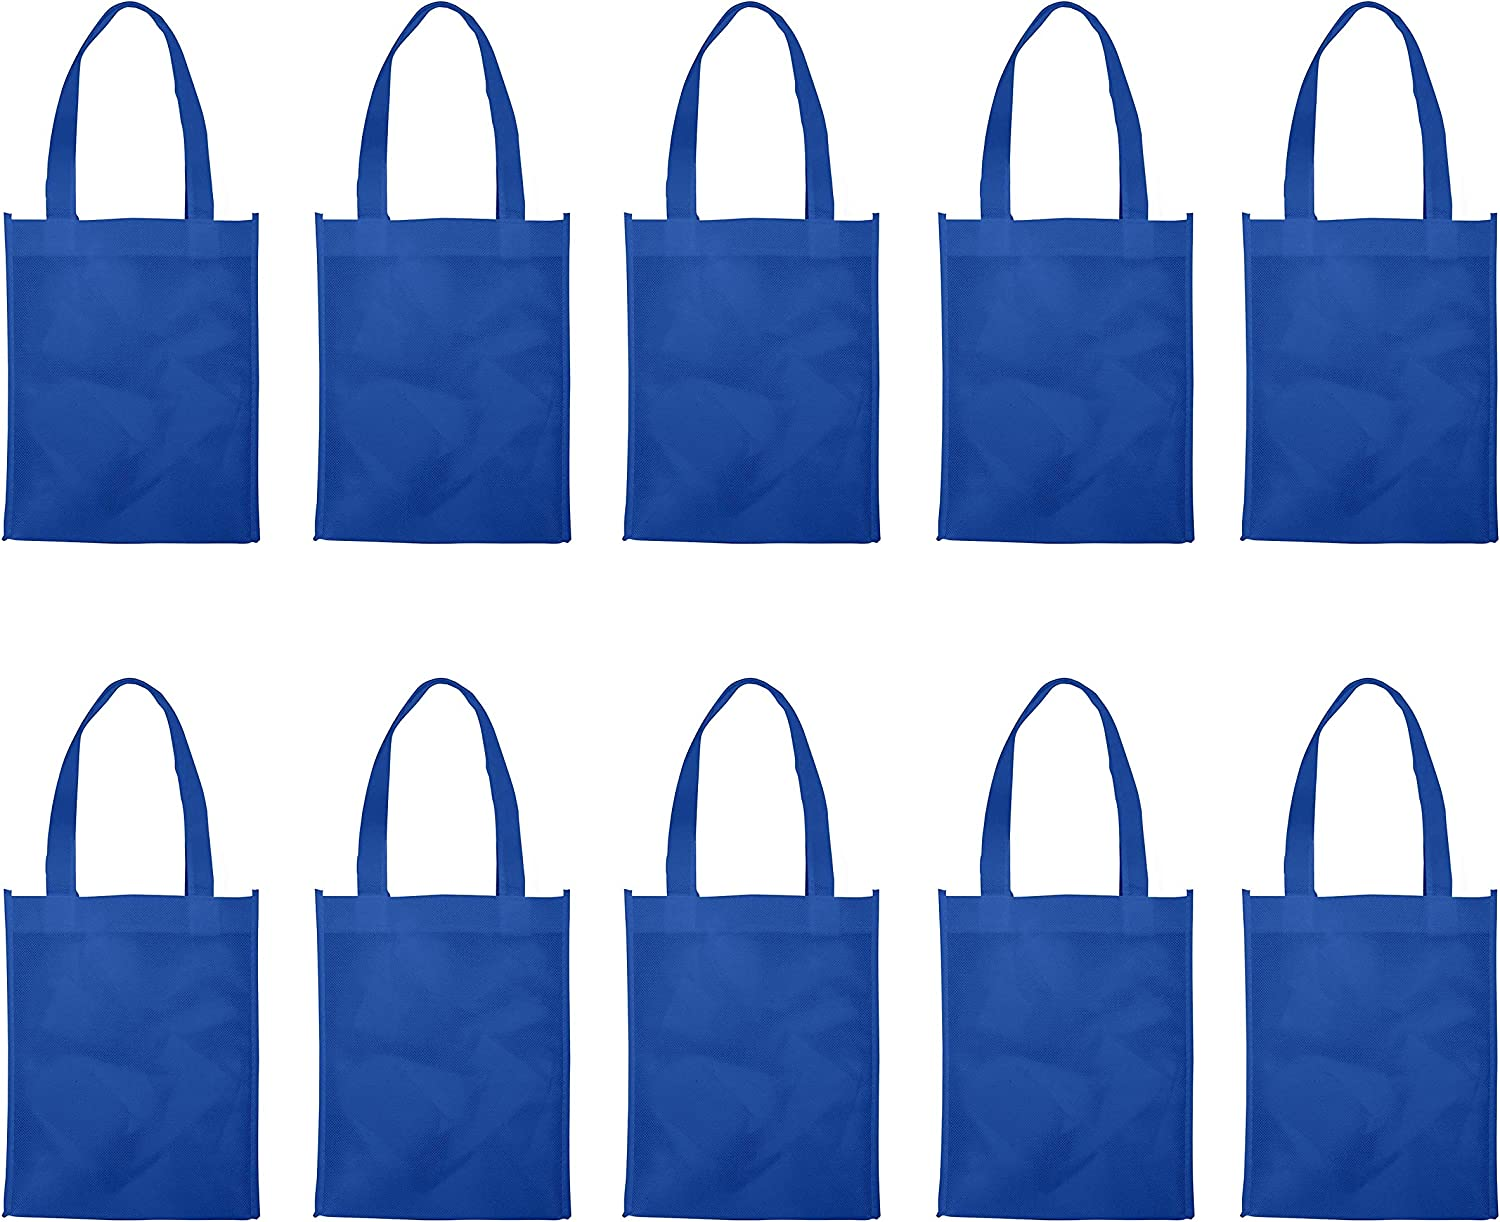 New life Small Max 57% OFF Gift Bags - Reusable Cloth Trade Favors Bag Wedding for S